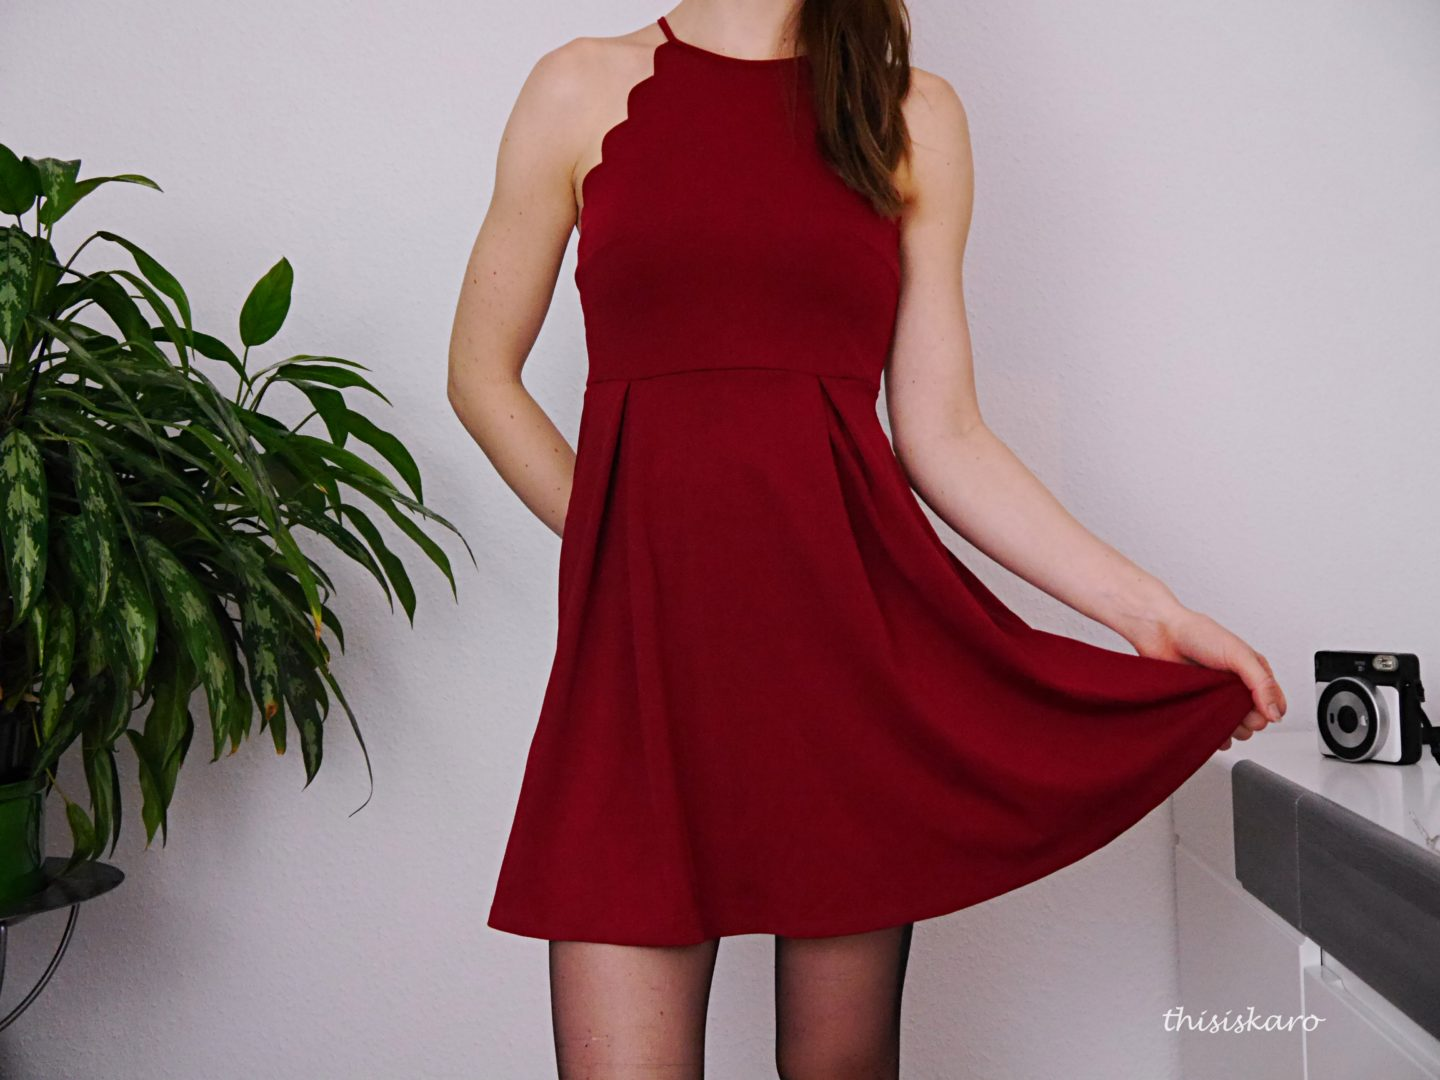 SheIn Review mit Try-on